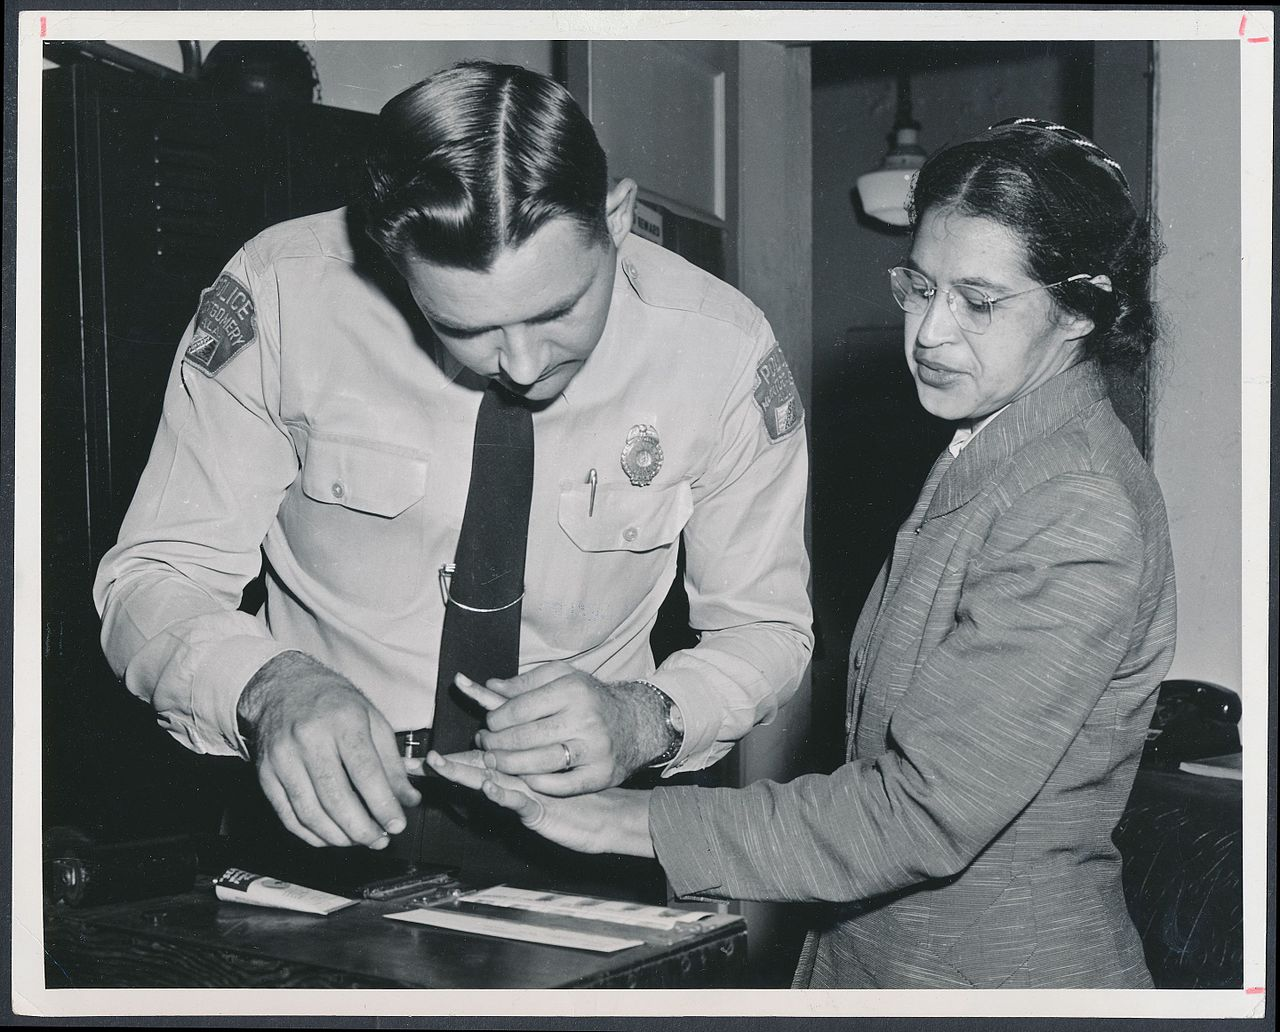 Rosa Parks being fingerprinted by Deputy Sheriff D.H. Lackey (By Associated Press (http://www.rmyauctions.com/lot-8002.aspx) [Public domain], via Wikimedia Commons)